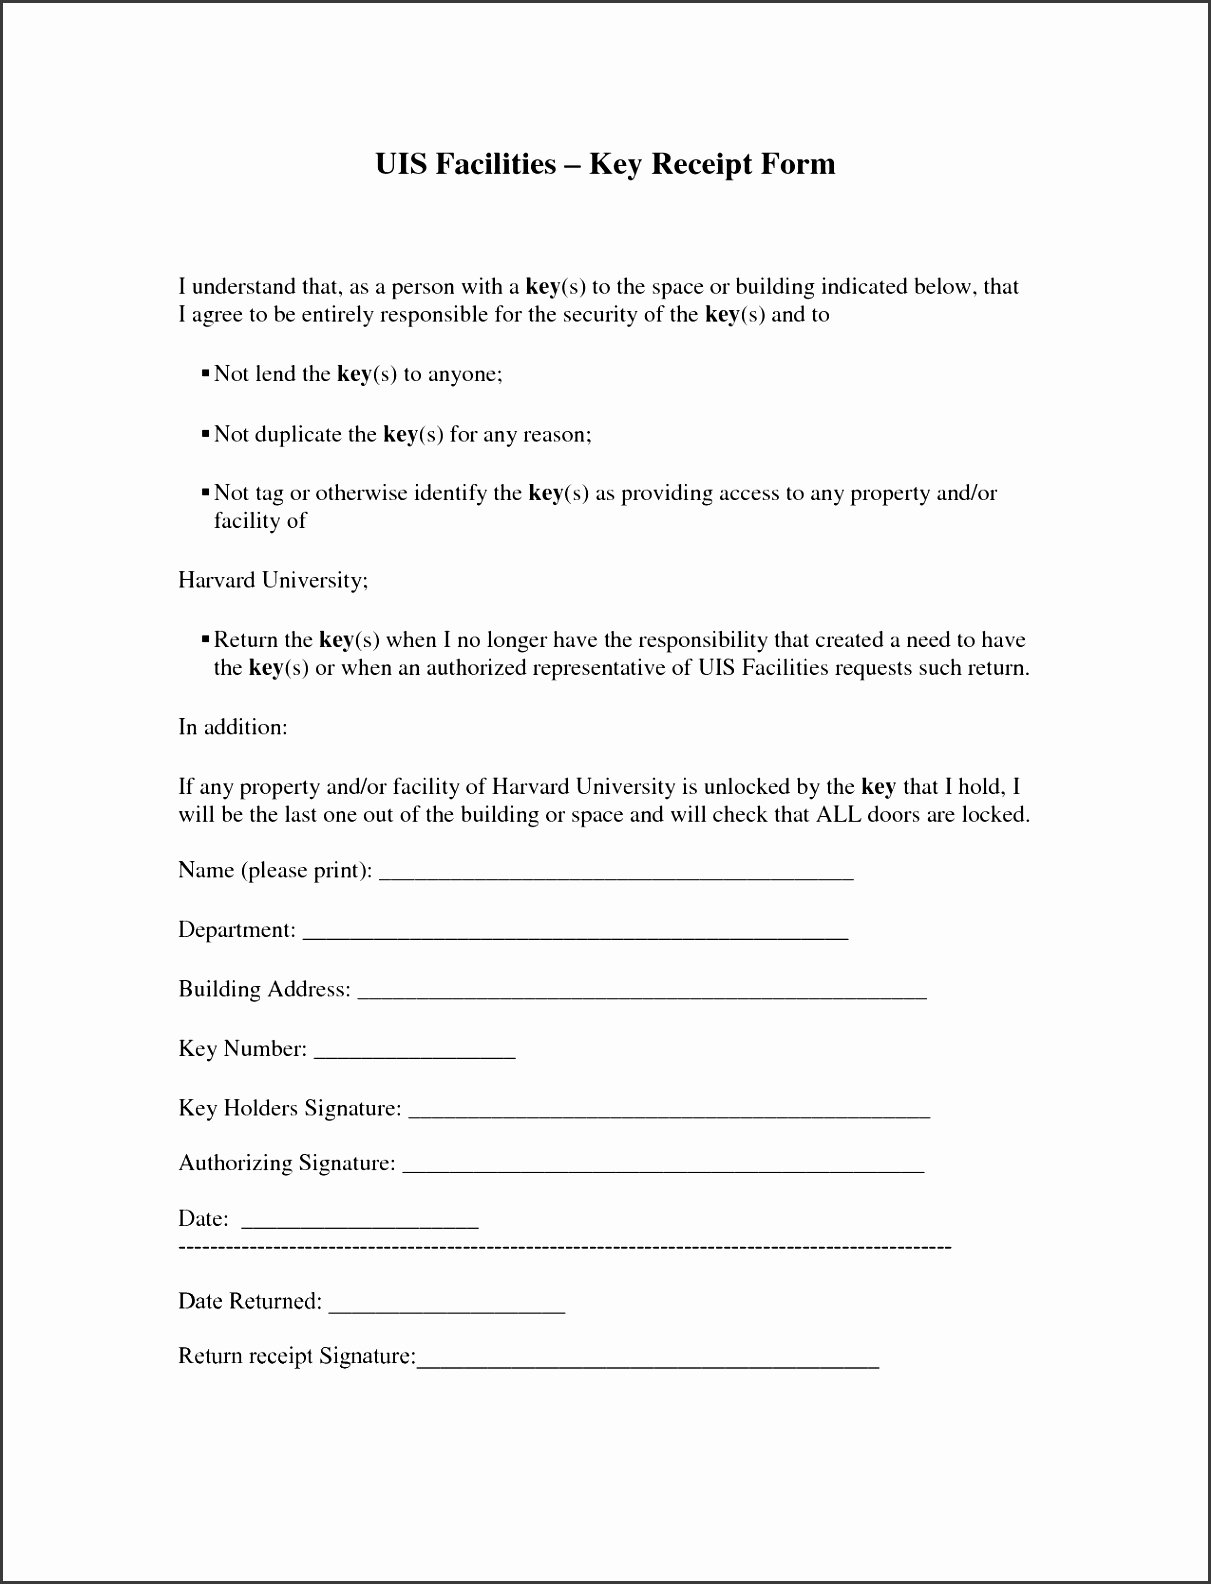 Employee Key Holder Agreement form Fresh 10 Free Printable Receipt form Sampletemplatess